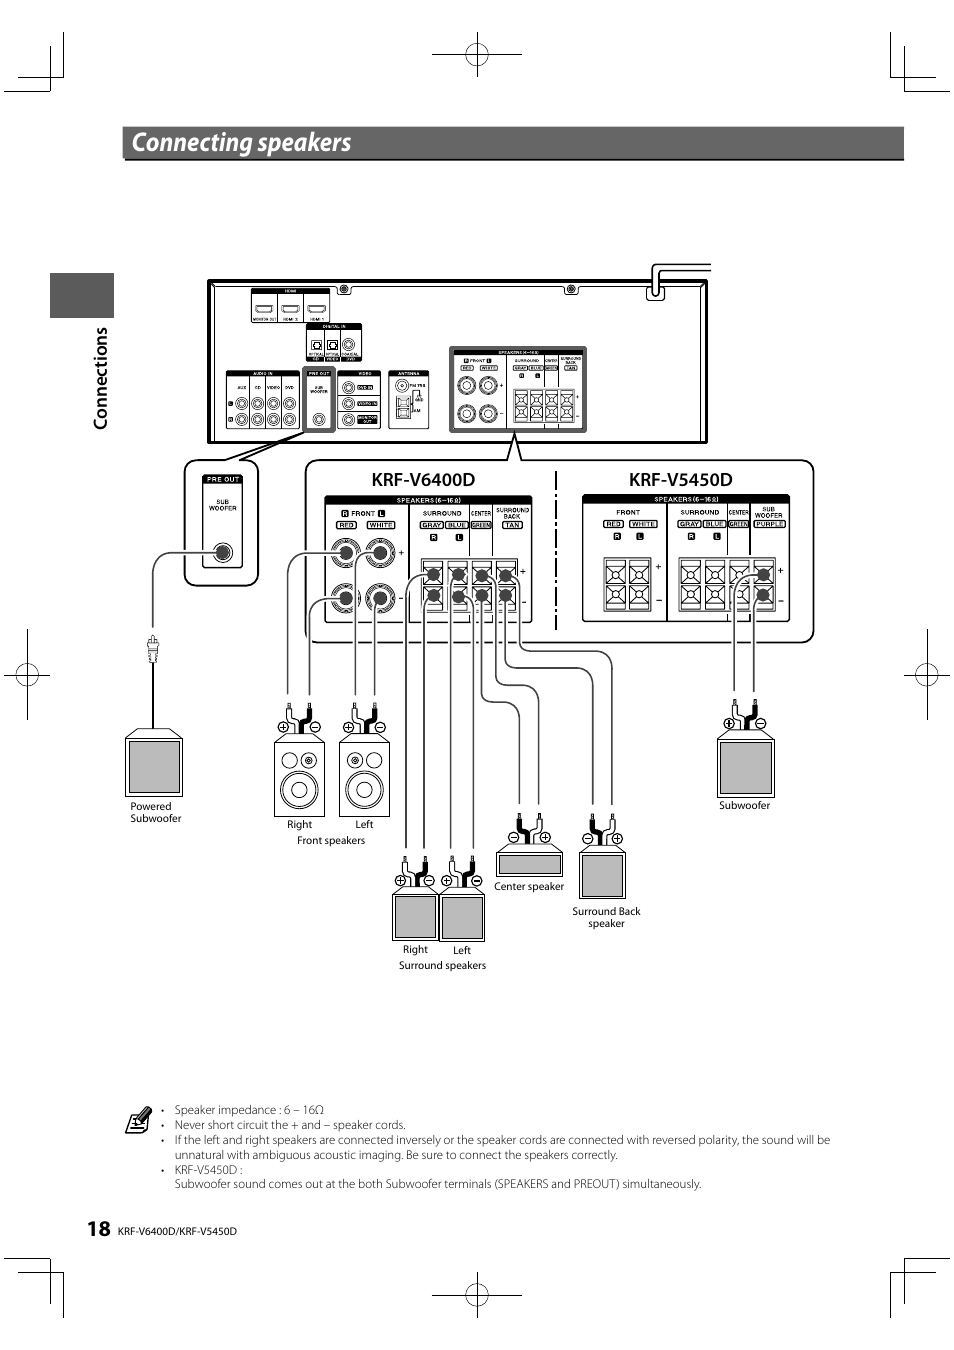 Connecting Speakers Kenwood Krf V5450d User Manual Page 18 48 Passive Surround Circuit Diagram